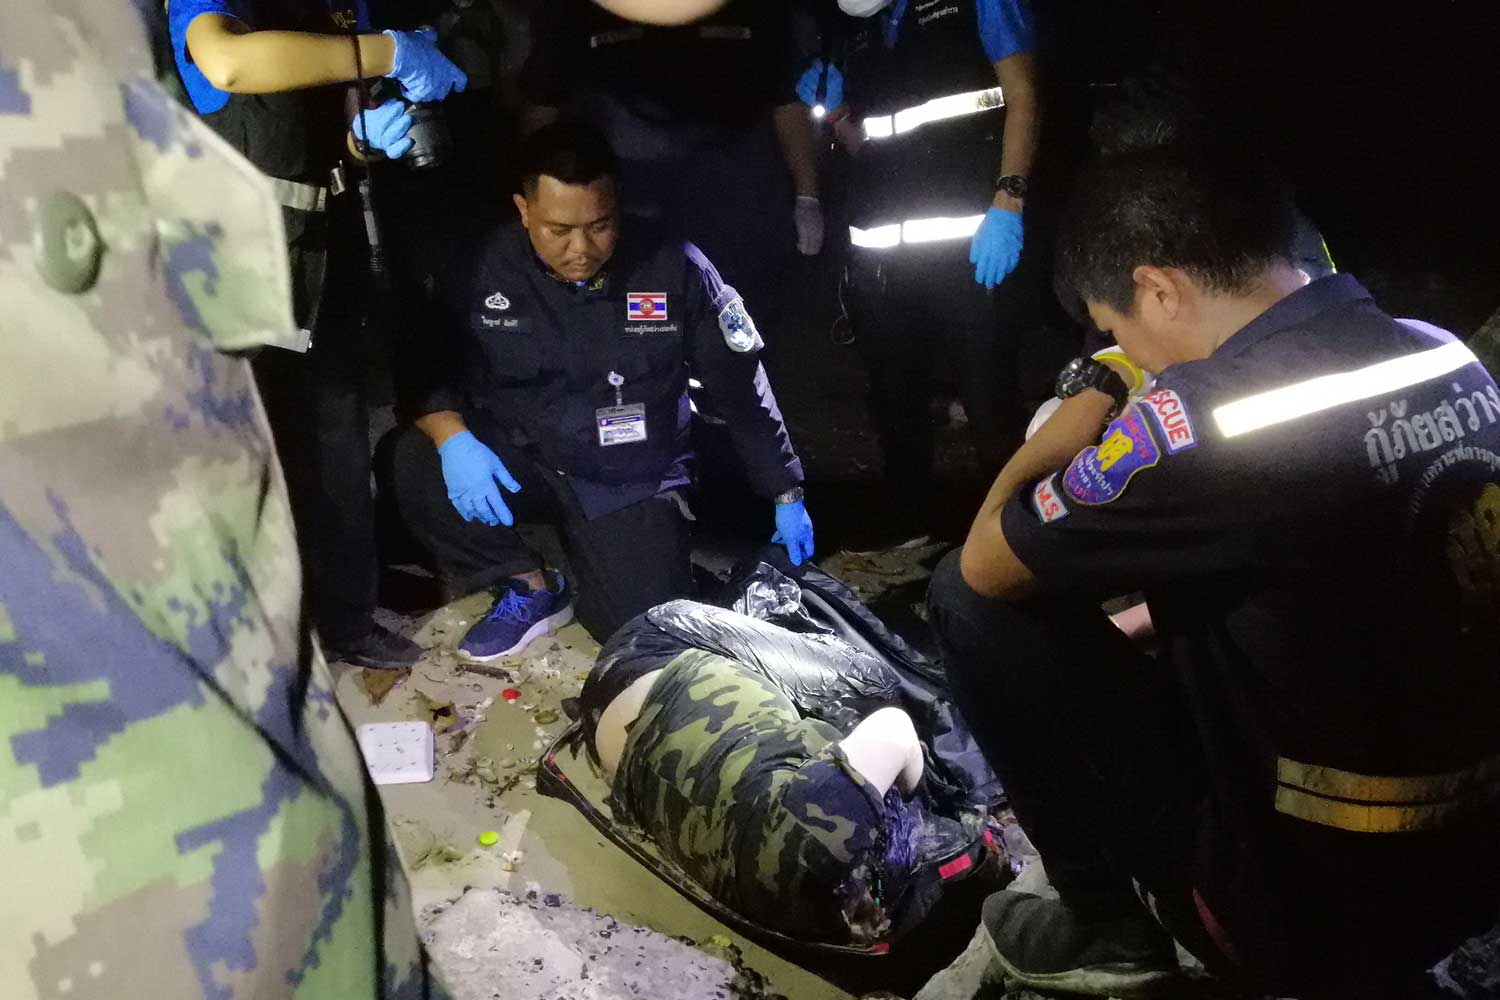 Police and rescue workers inspect the body of a woman found on Bang Phra beach in Si Racha district, Chon Buri, on Friday. (Photo by Jerdsak Saengthongcharoen)